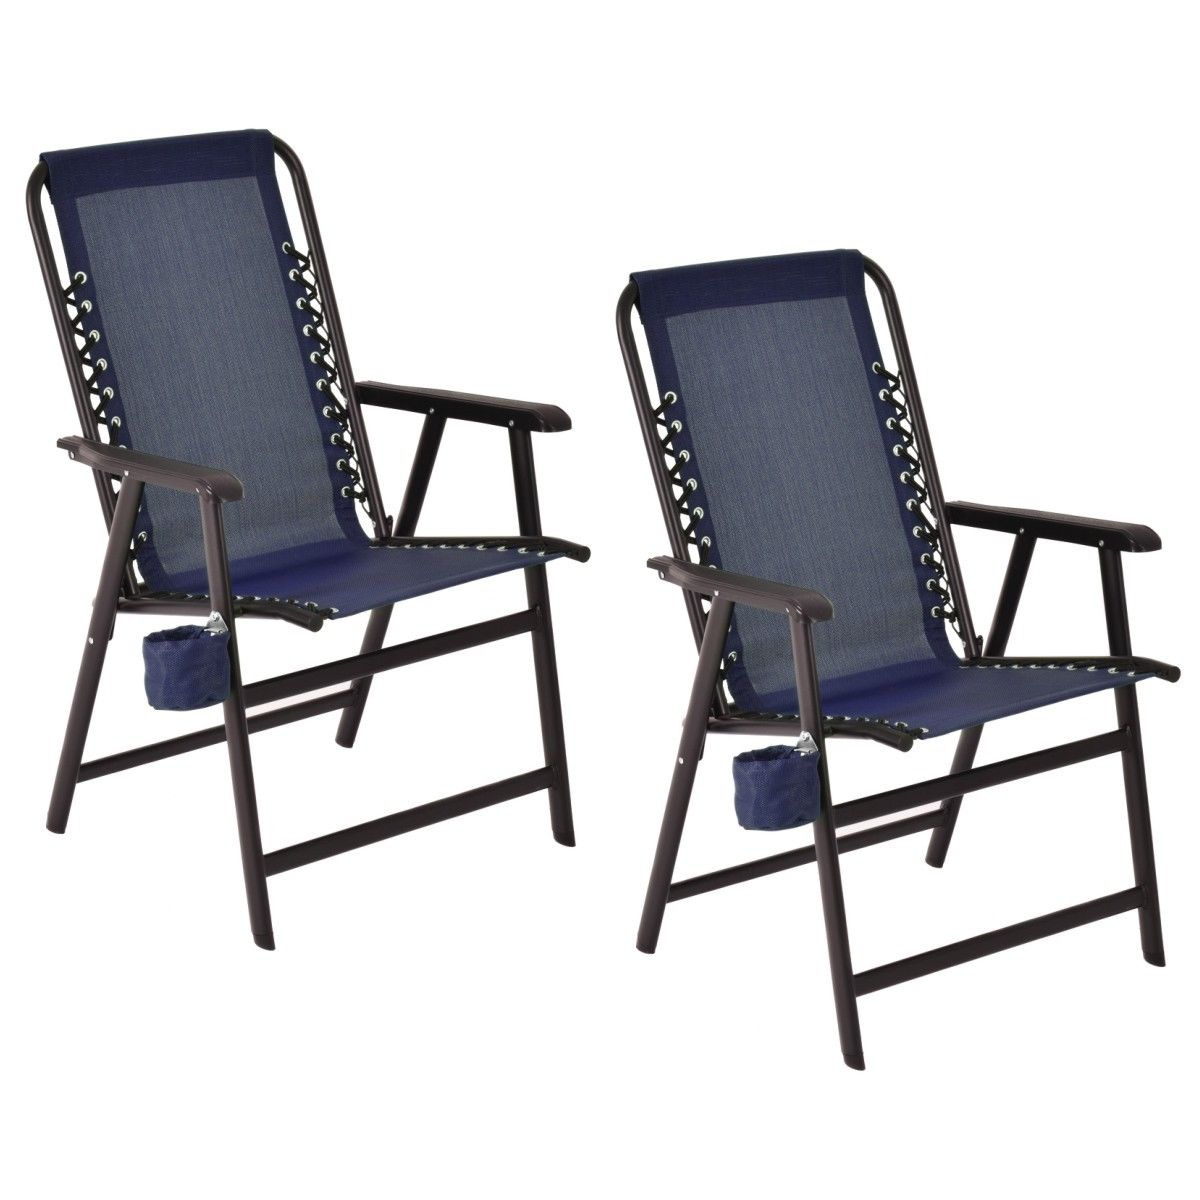 Costway Set Of Two Folding Outdoor Arm Chair Steel Frame W/ Cup Holder Blue